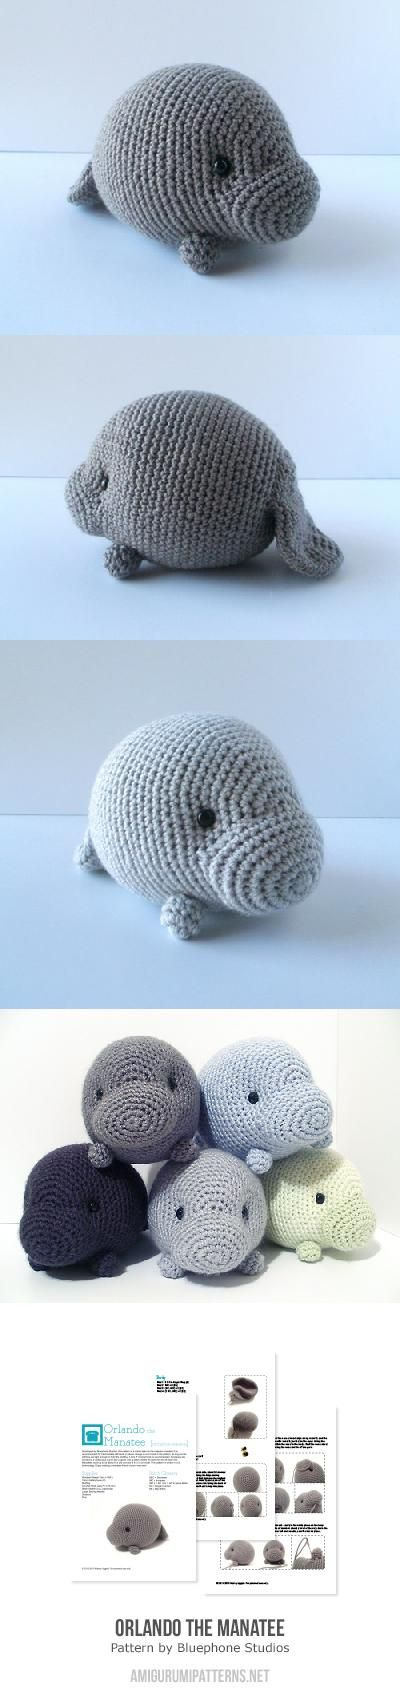 Amigurumi Manatee Pattern : Patterns, Fabrics and So cute on Pinterest